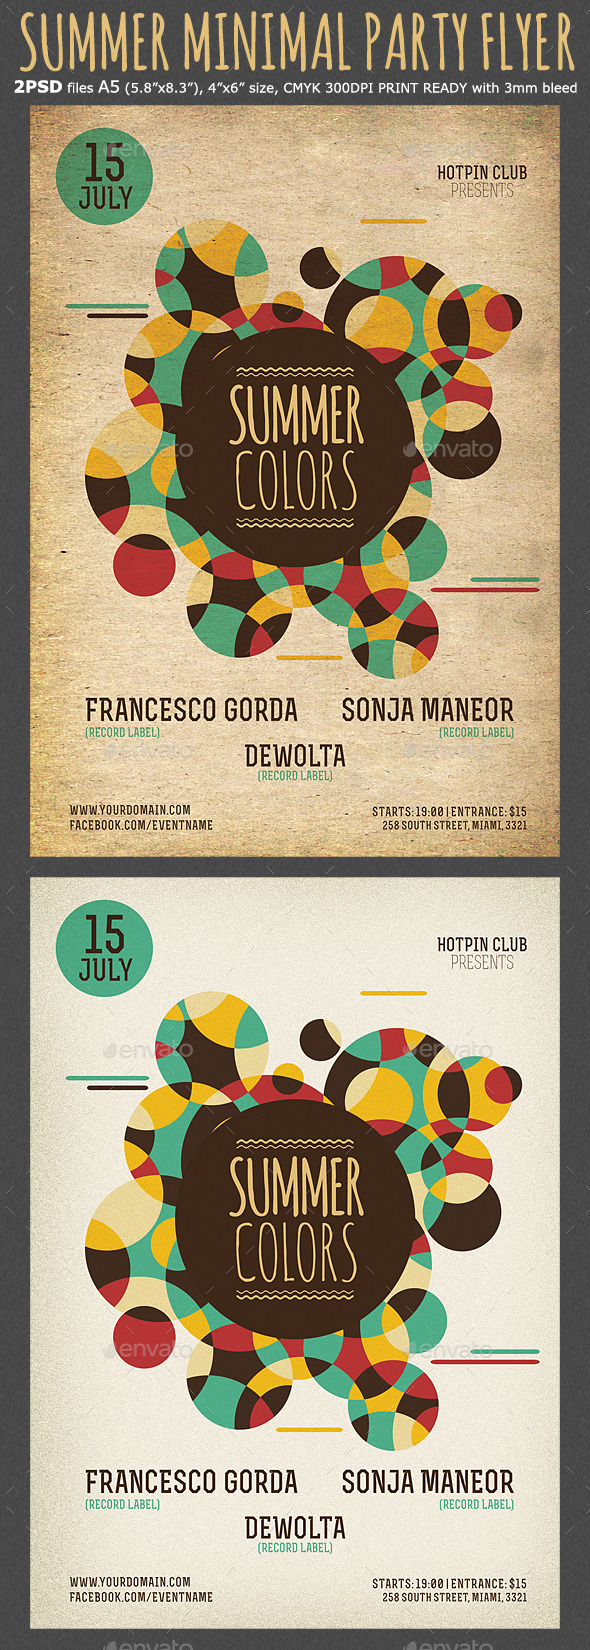 GraphicRiver Summer Colors Minimal Party Flyer Template 11958921